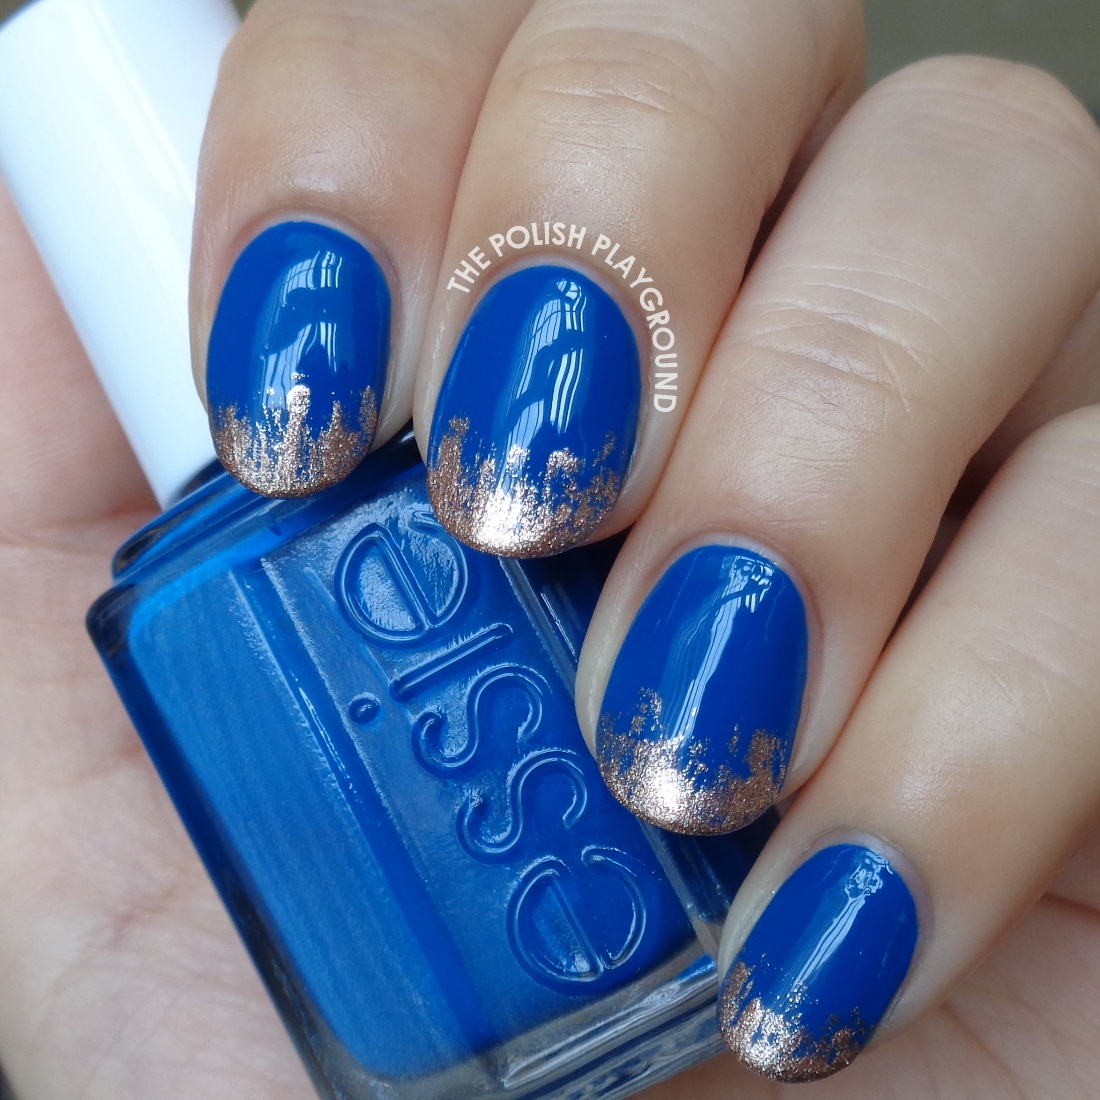 Nail Polish Tips: The Polish Playground: Royal Blue With Rose Gold Tips